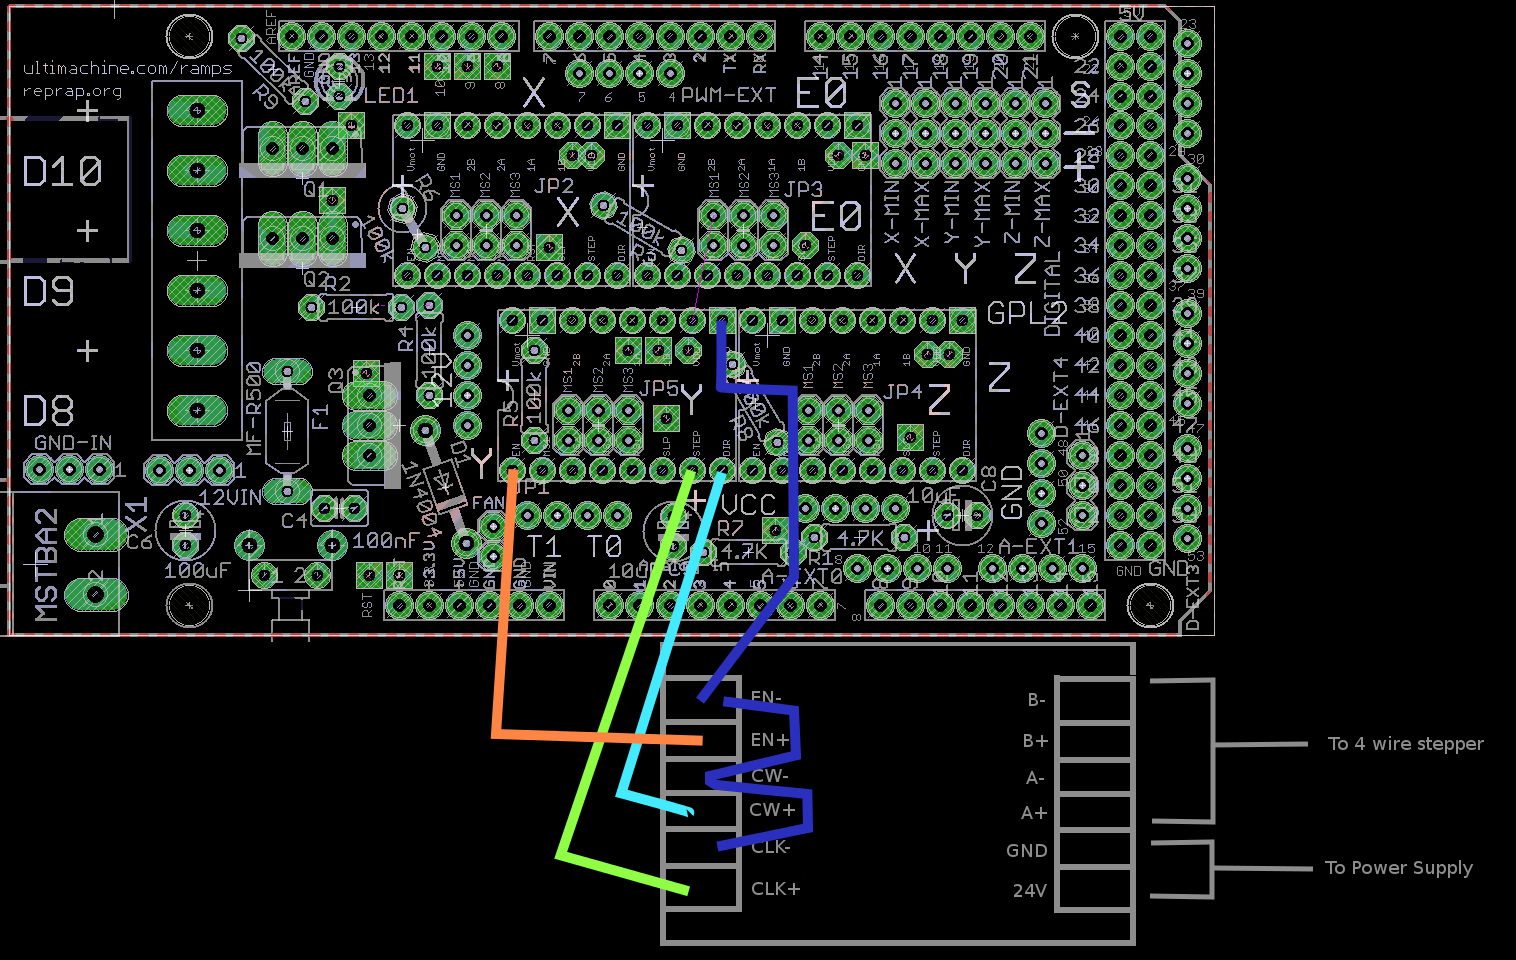 necessary wiring i have bashed together an example wiring diagram for replacing [ 1516 x 960 Pixel ]